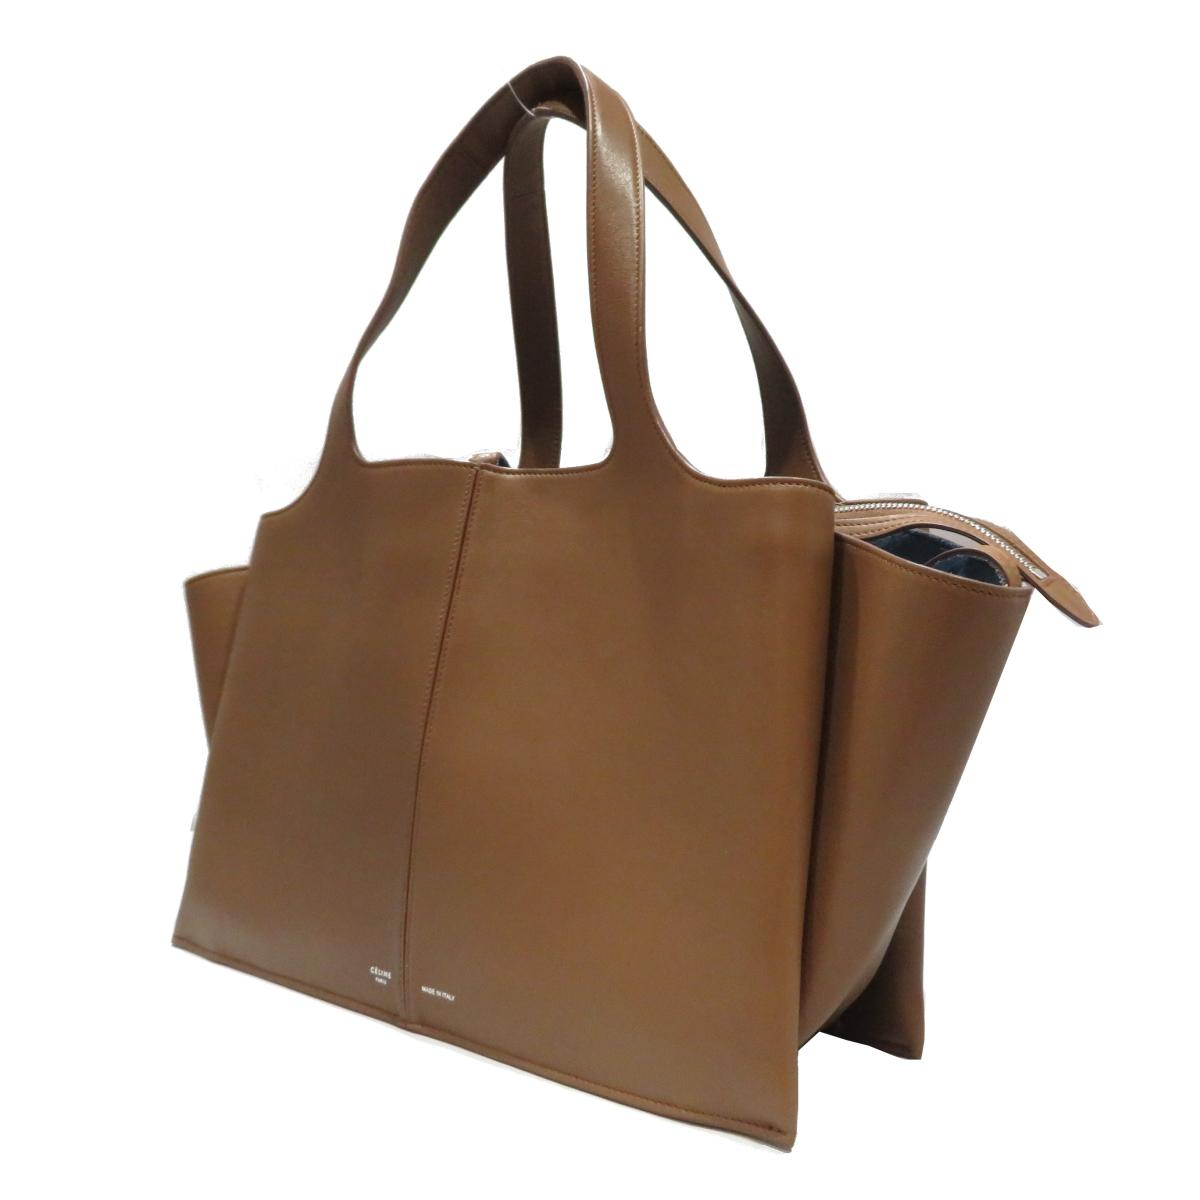 (Free shipping) Auth CELINE Tri Fold Shoulder Tote Bag leather Brown Used  Vintage  b701ccea95ebe